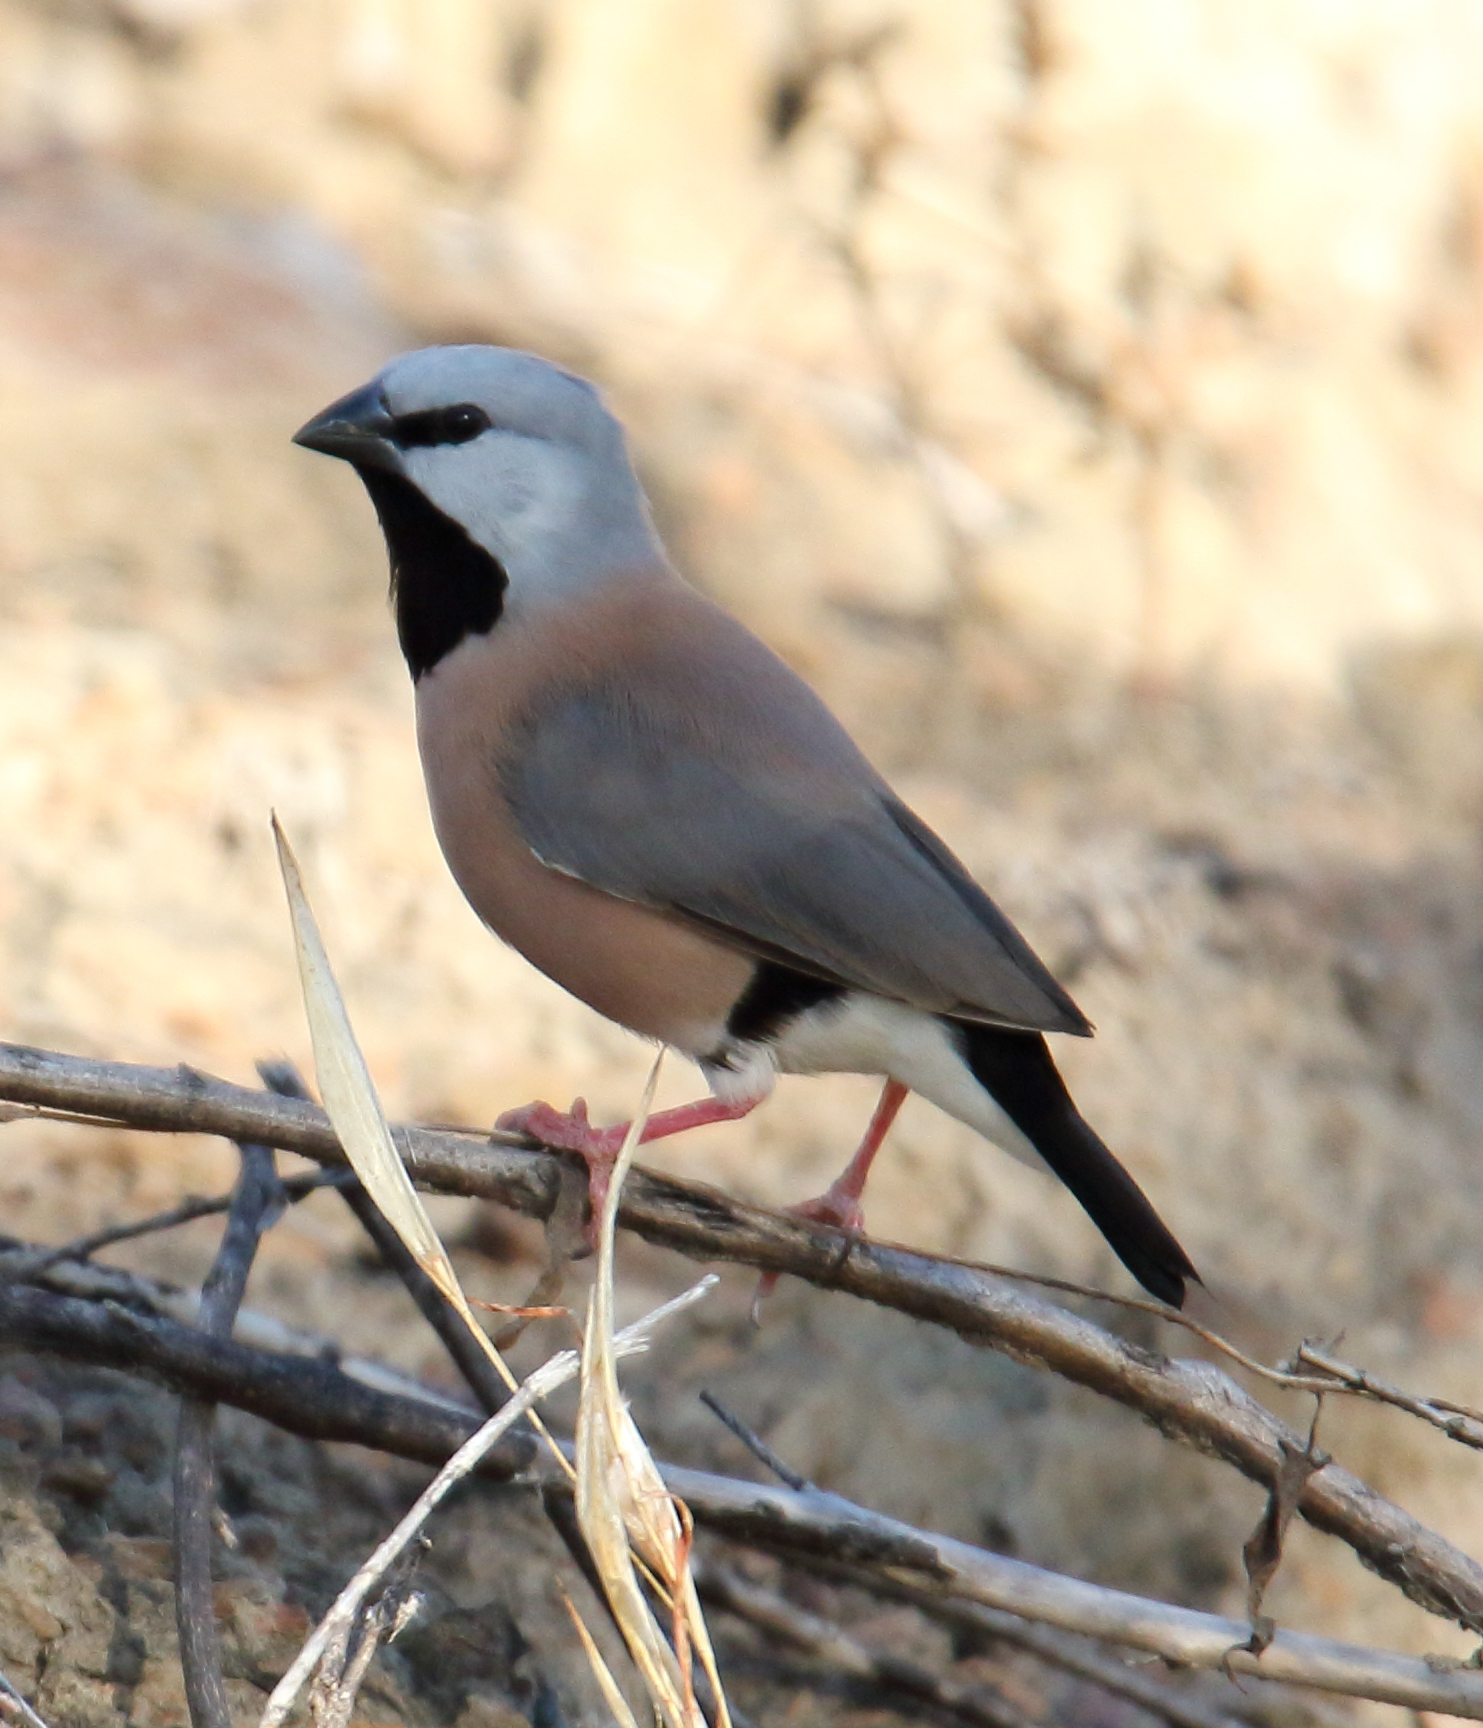 Black-throated Finch (Poephila cincta) - already endangered by mine works, this endangered bird's existence could be further jeopardised by the mine's thirst for scarce water supplies. Image Wikipedia